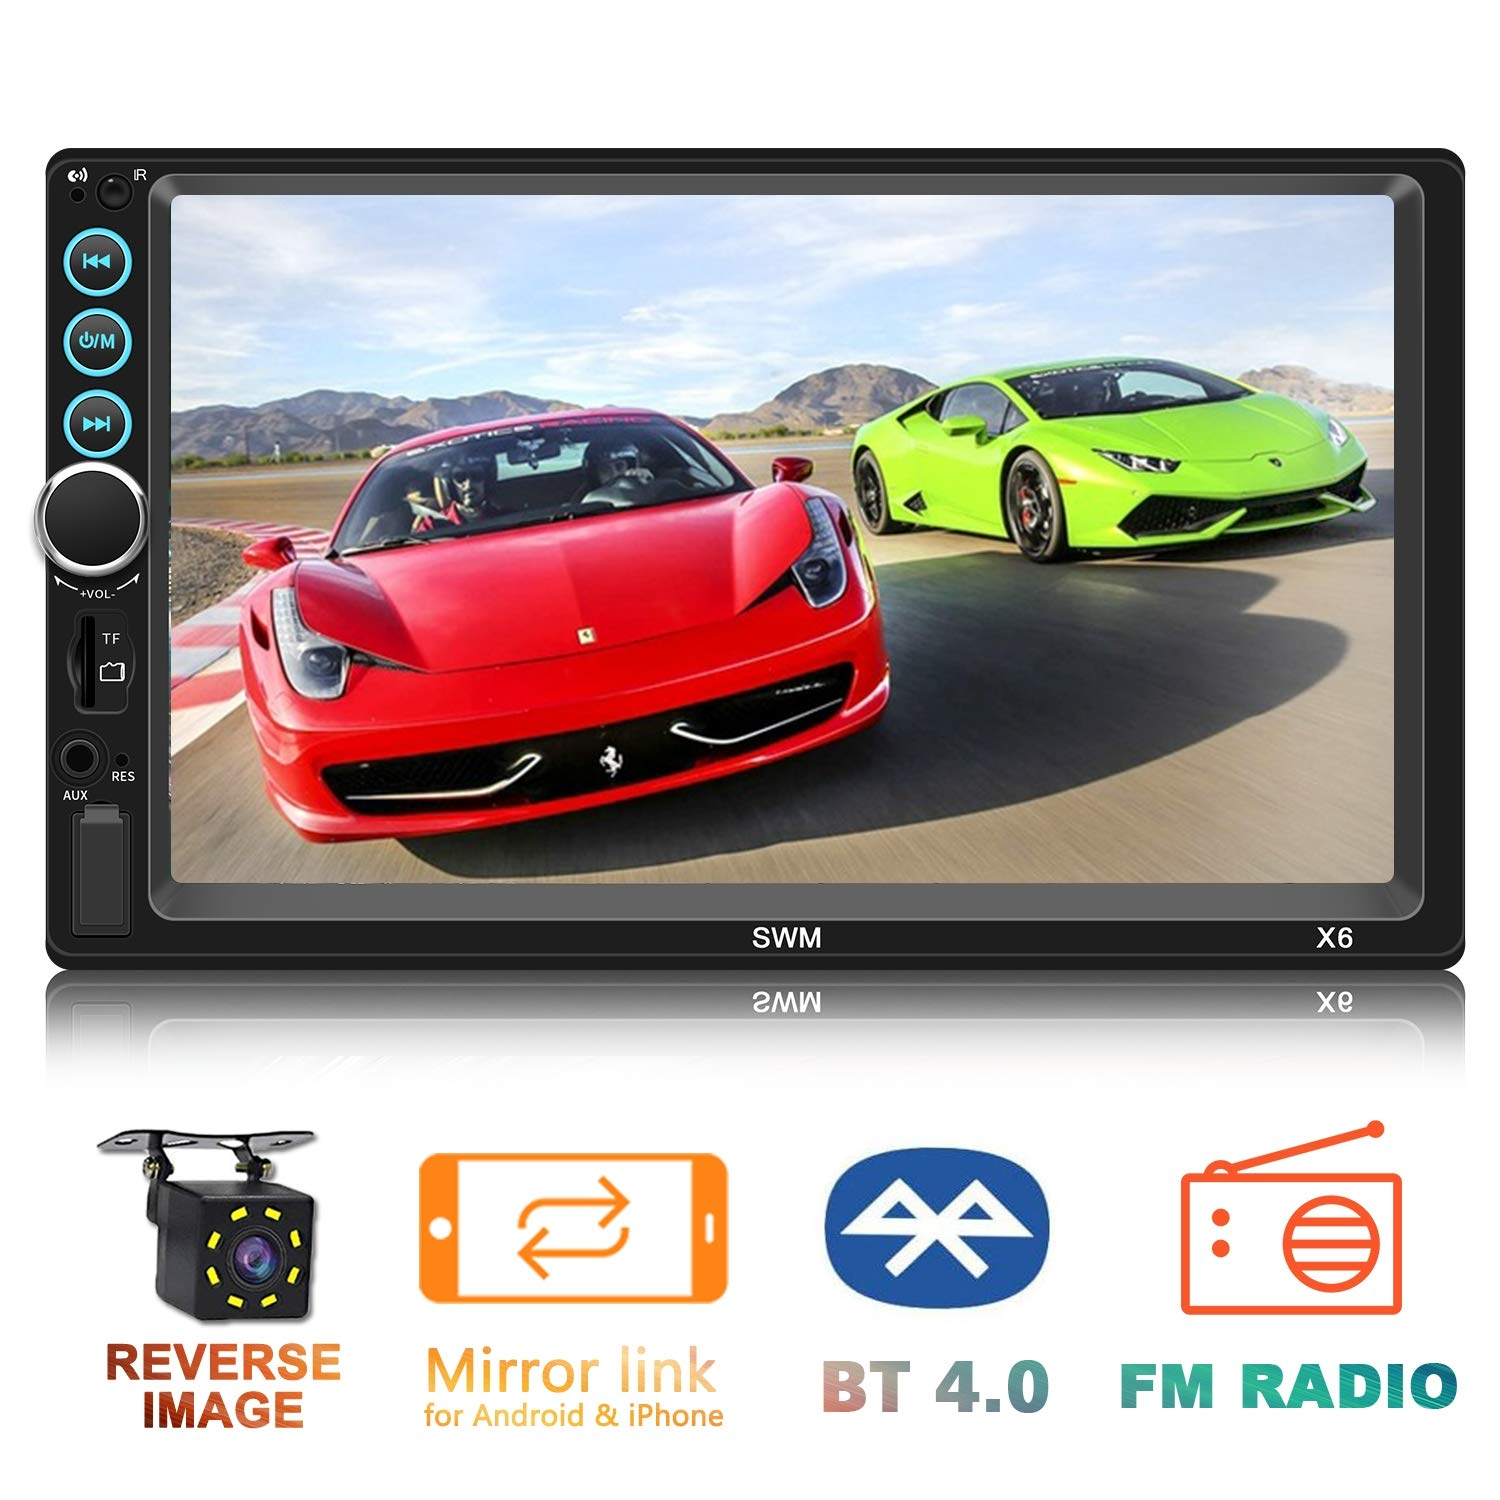 Double Din in-Dash Head Unit Car Stereo Audio Systems 7 inch Touch Screen MP5 Player FM Radio Compatible with Bluetooth 4.0 Support Rear-View Camera, MP3 Player, USB Port, Aux Input, Mirror Link by Yakalla